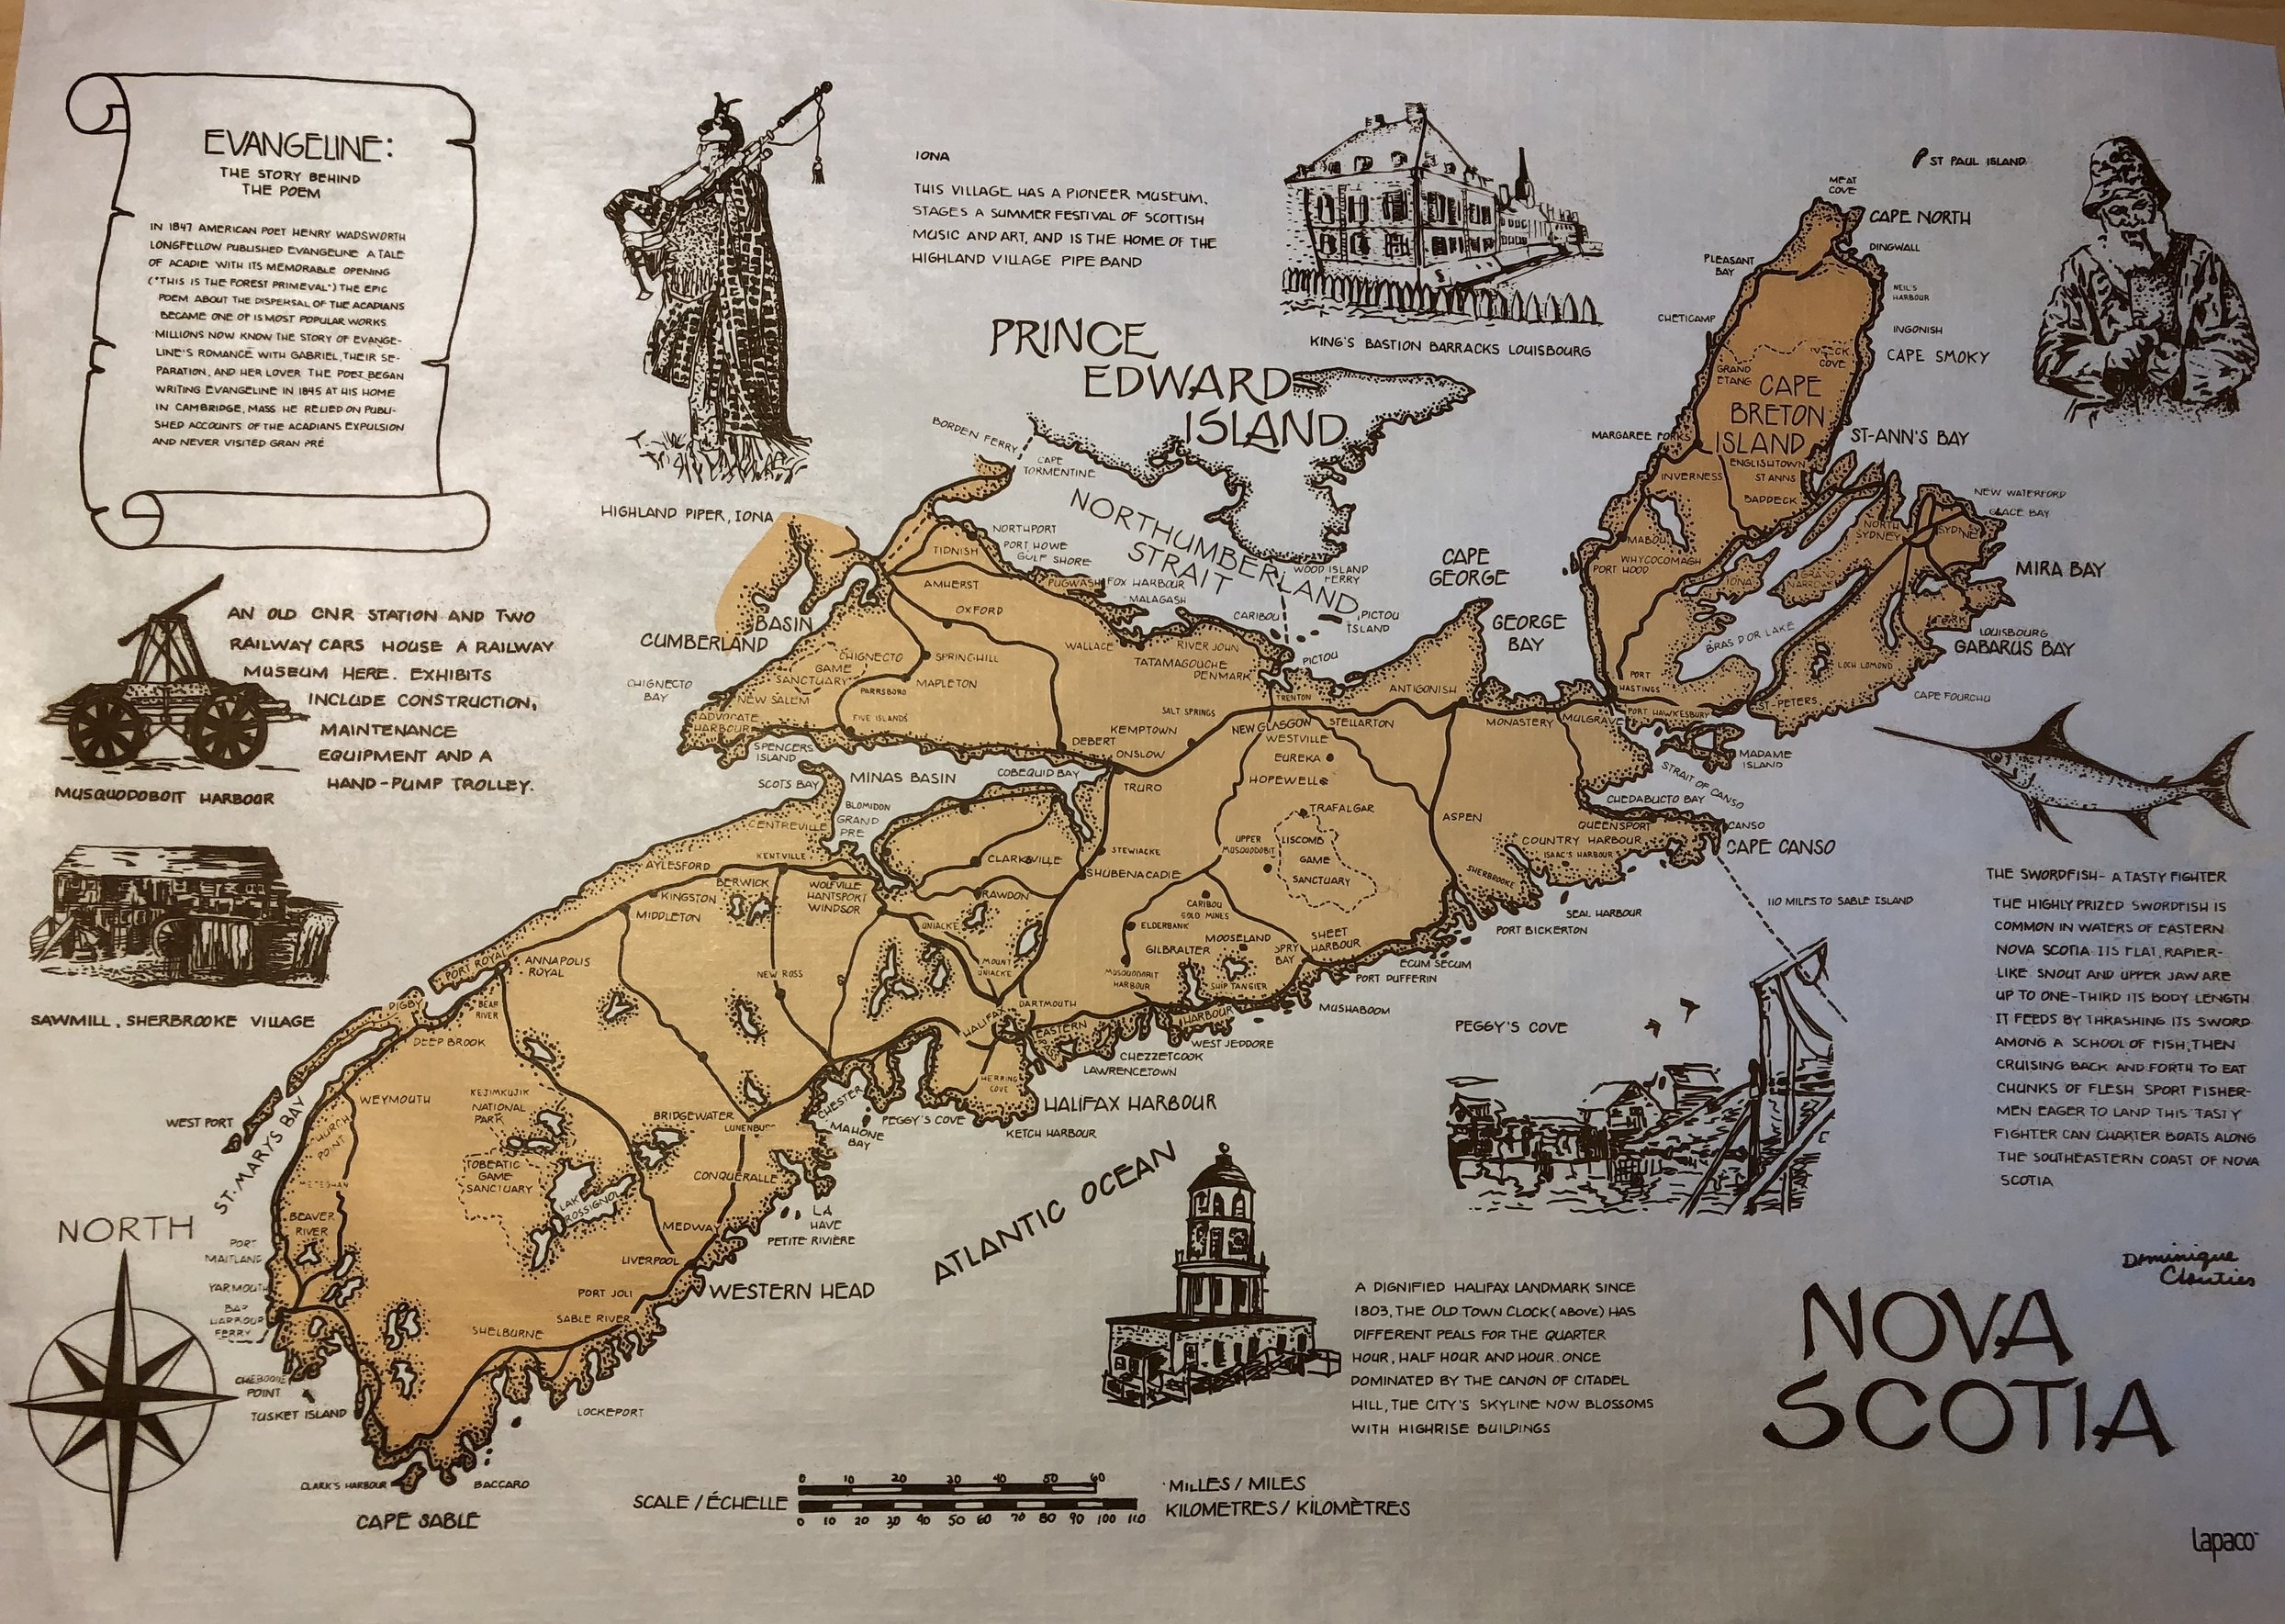 A fun little map of Nova Scotia.It's actually a placemat from The South Shore Fish Shack.... say that fast 3 times. The Fish Shack is a great seafood restaurant in Lunenburg.